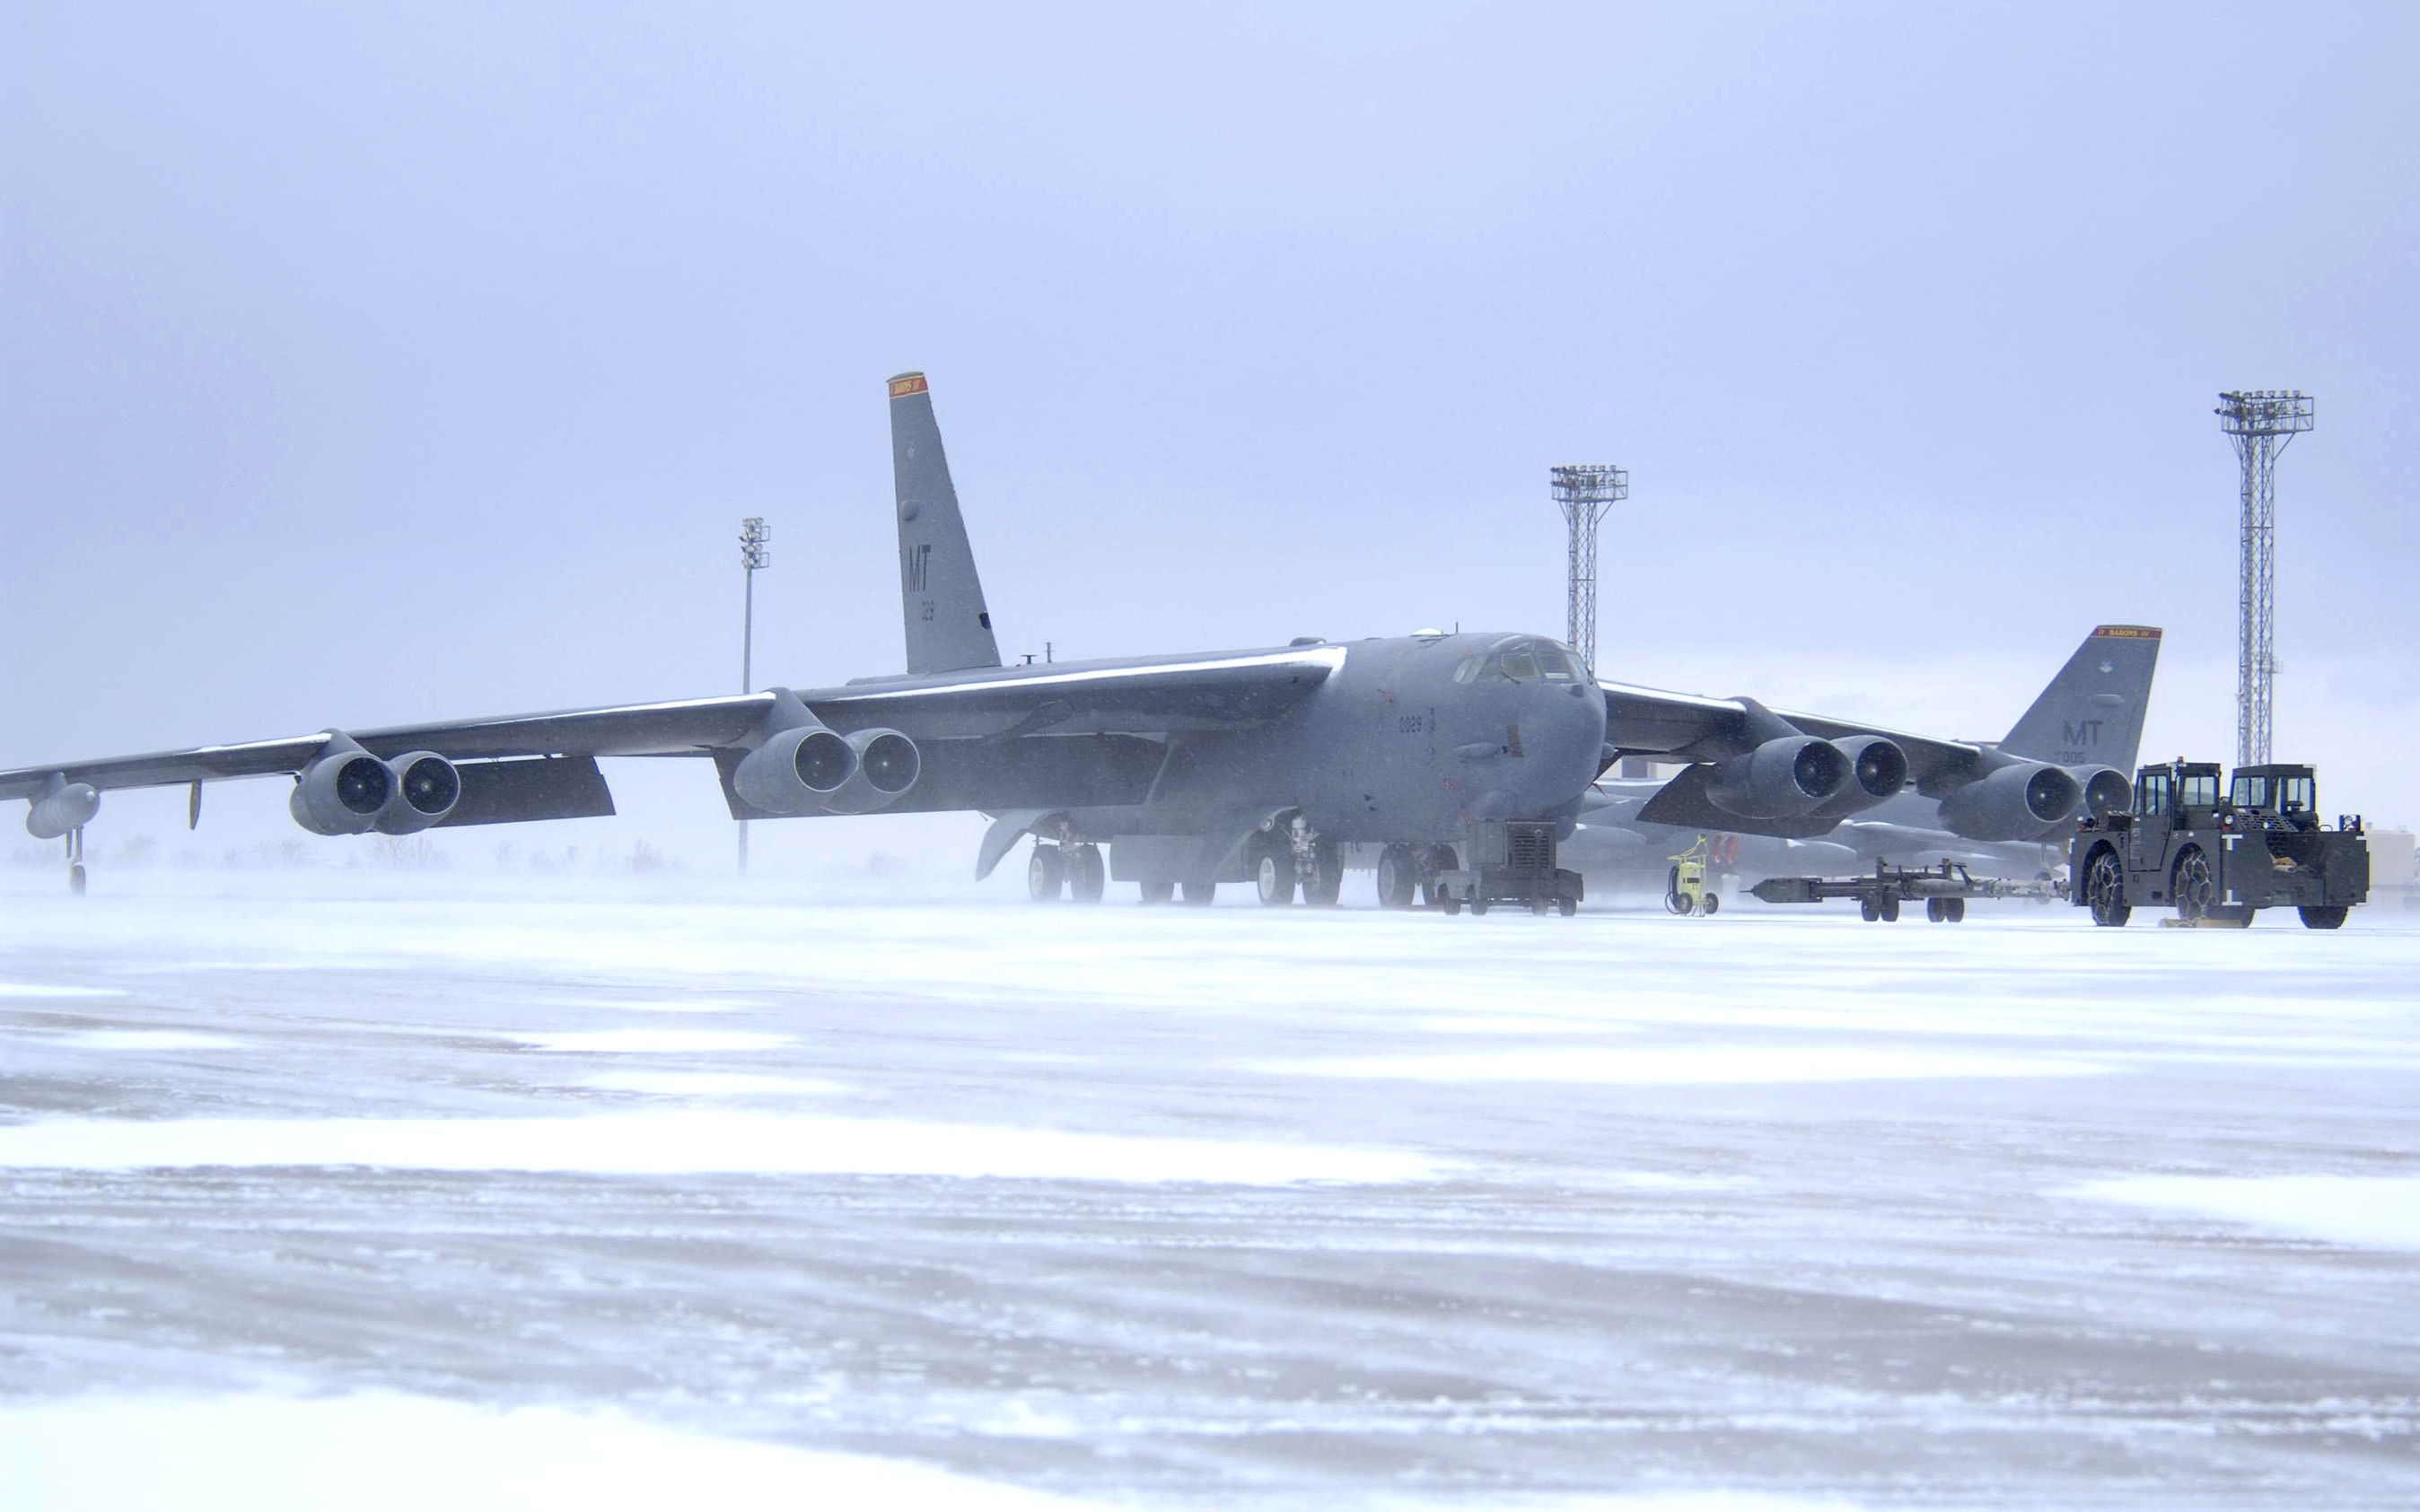 Aircraft military cold Arctic